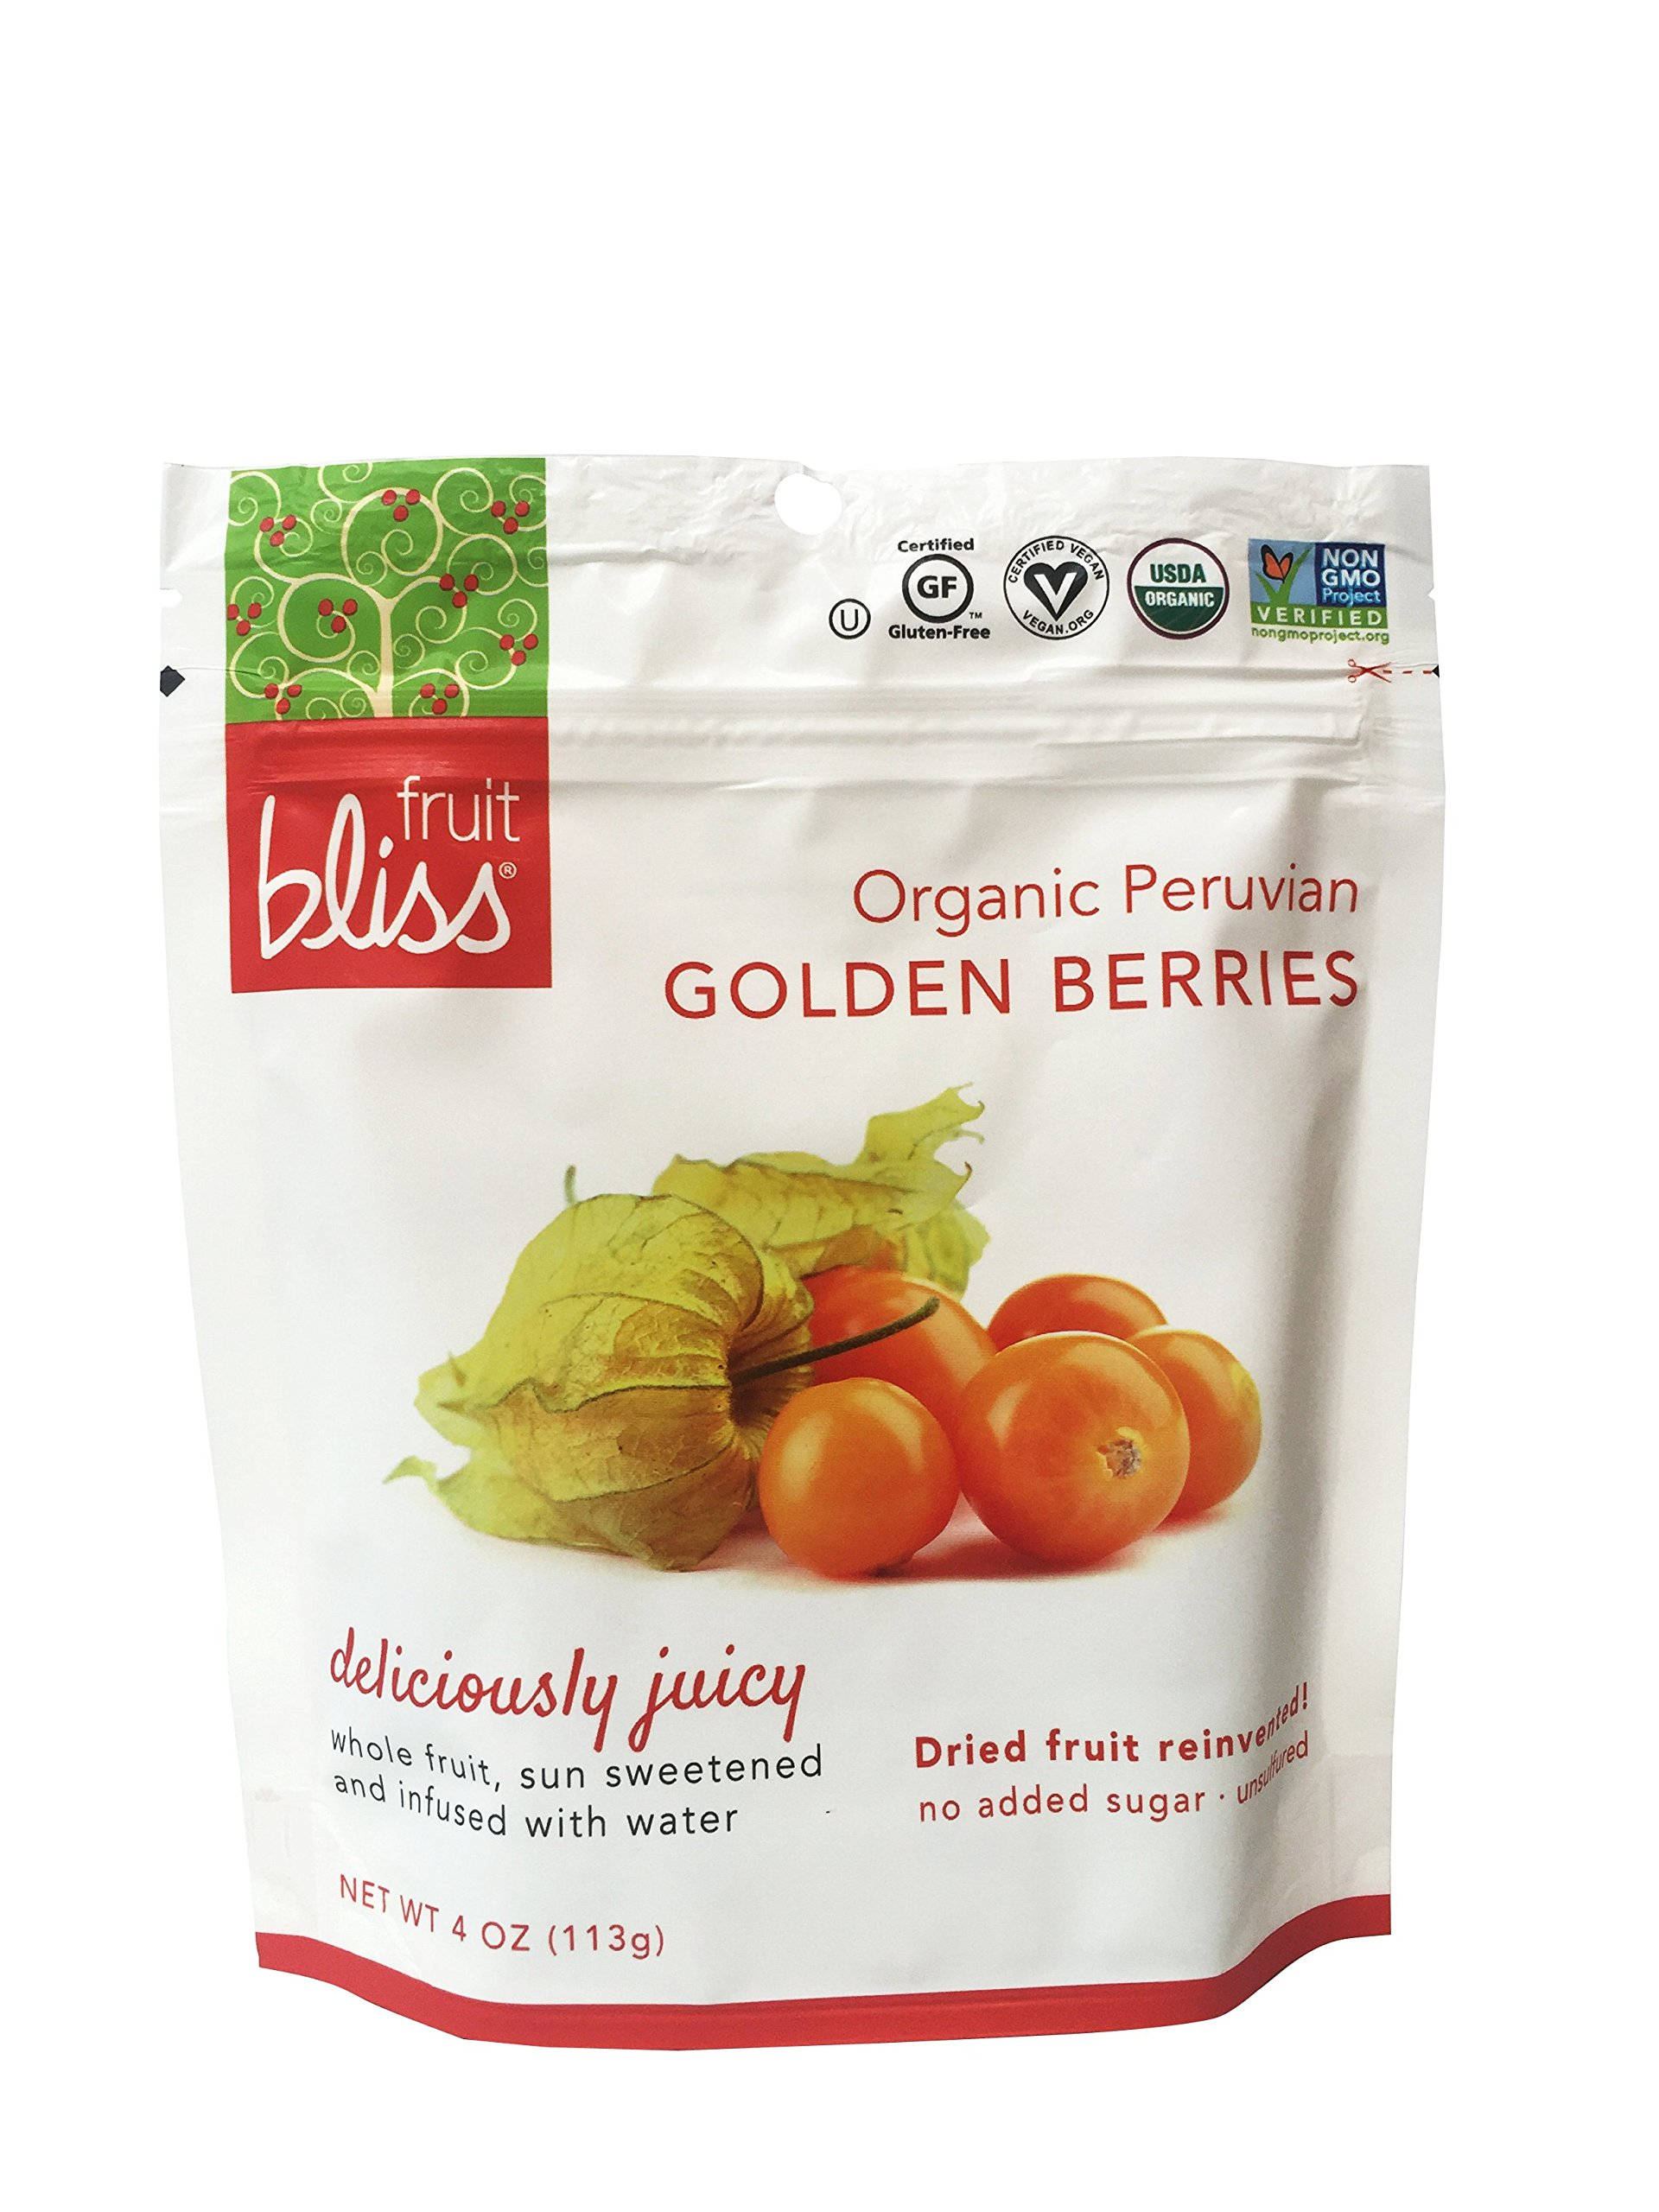 Fruit Bliss Organic Peruvian, Golden Berries, 4 Oz - 3 Pack by Fruit Bliss (Image #1)